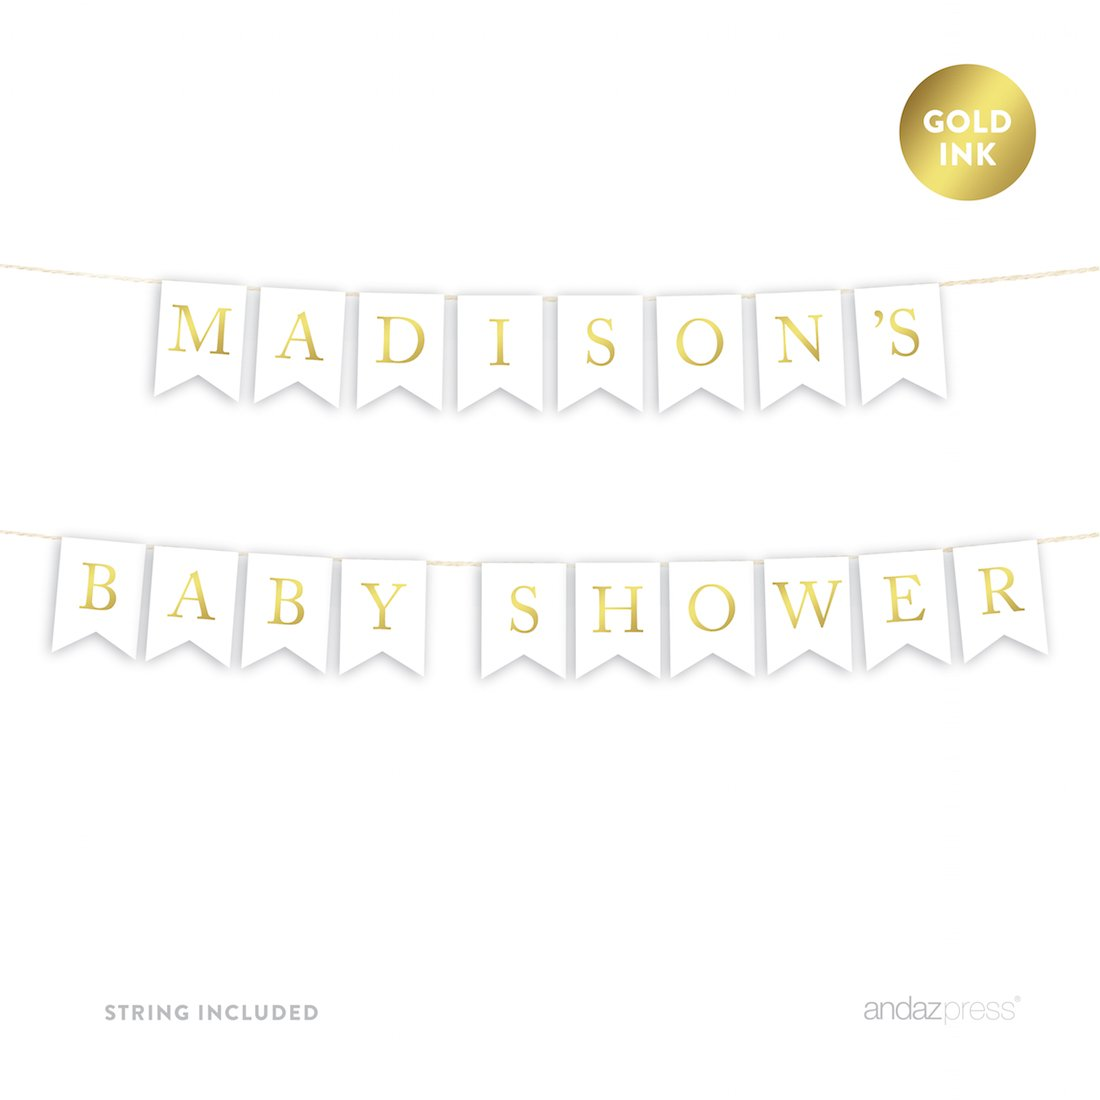 Andaz Press Personalized Baby Shower Hanging Bunting Pennant Party Banner with String, Metallic Gold Ink, Madison's Baby Shower, 8-Feet, 1-Set, Includes String, Custom Name